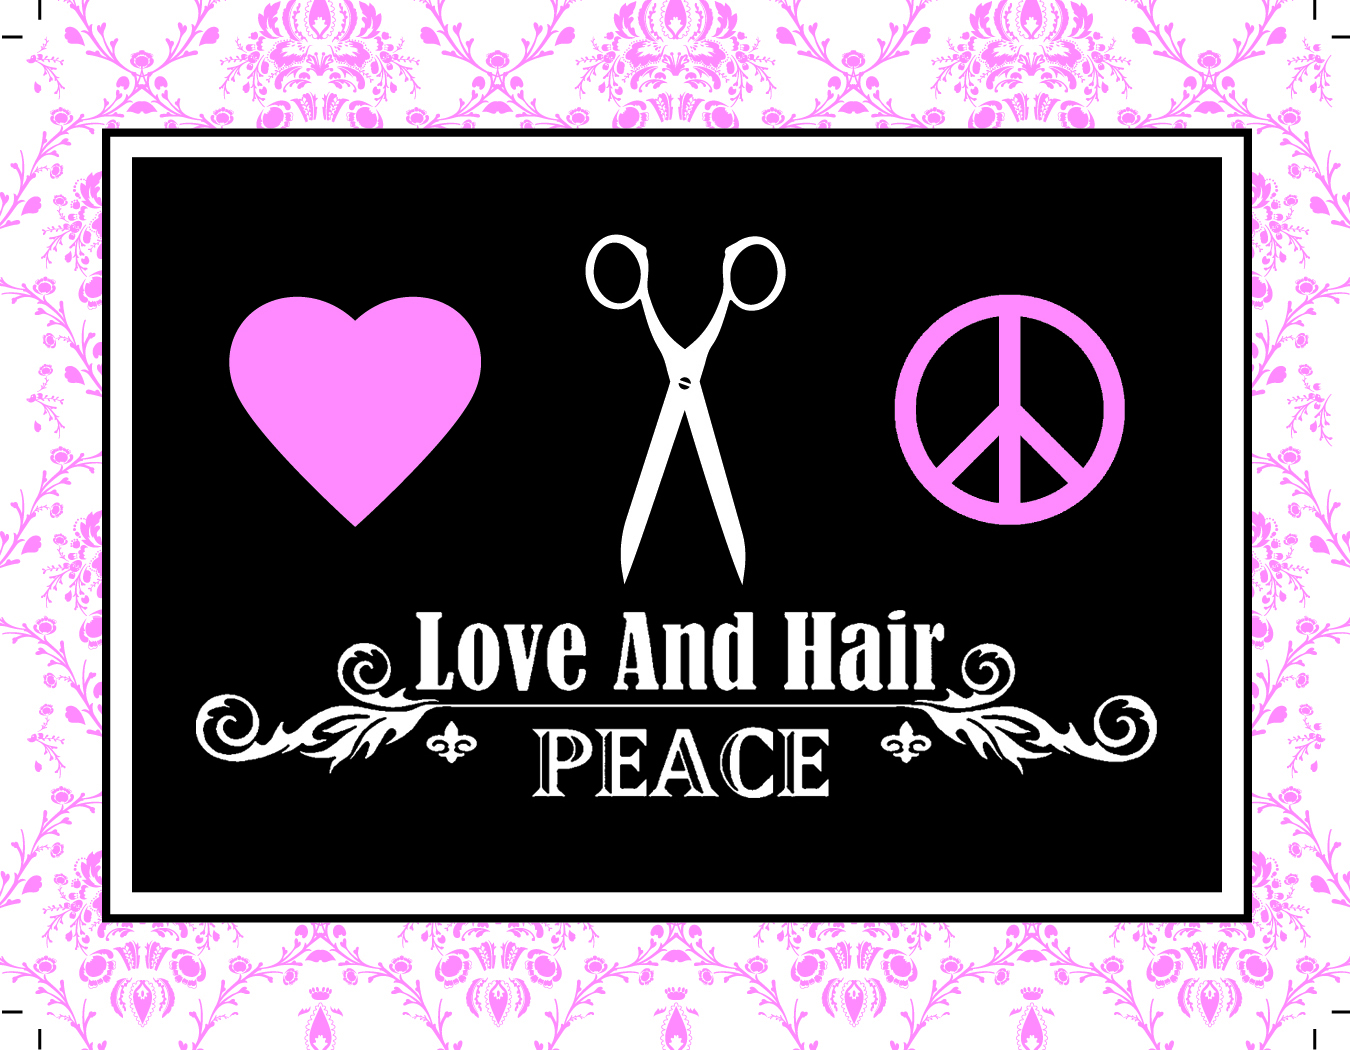 Love and Hair Peace Photo